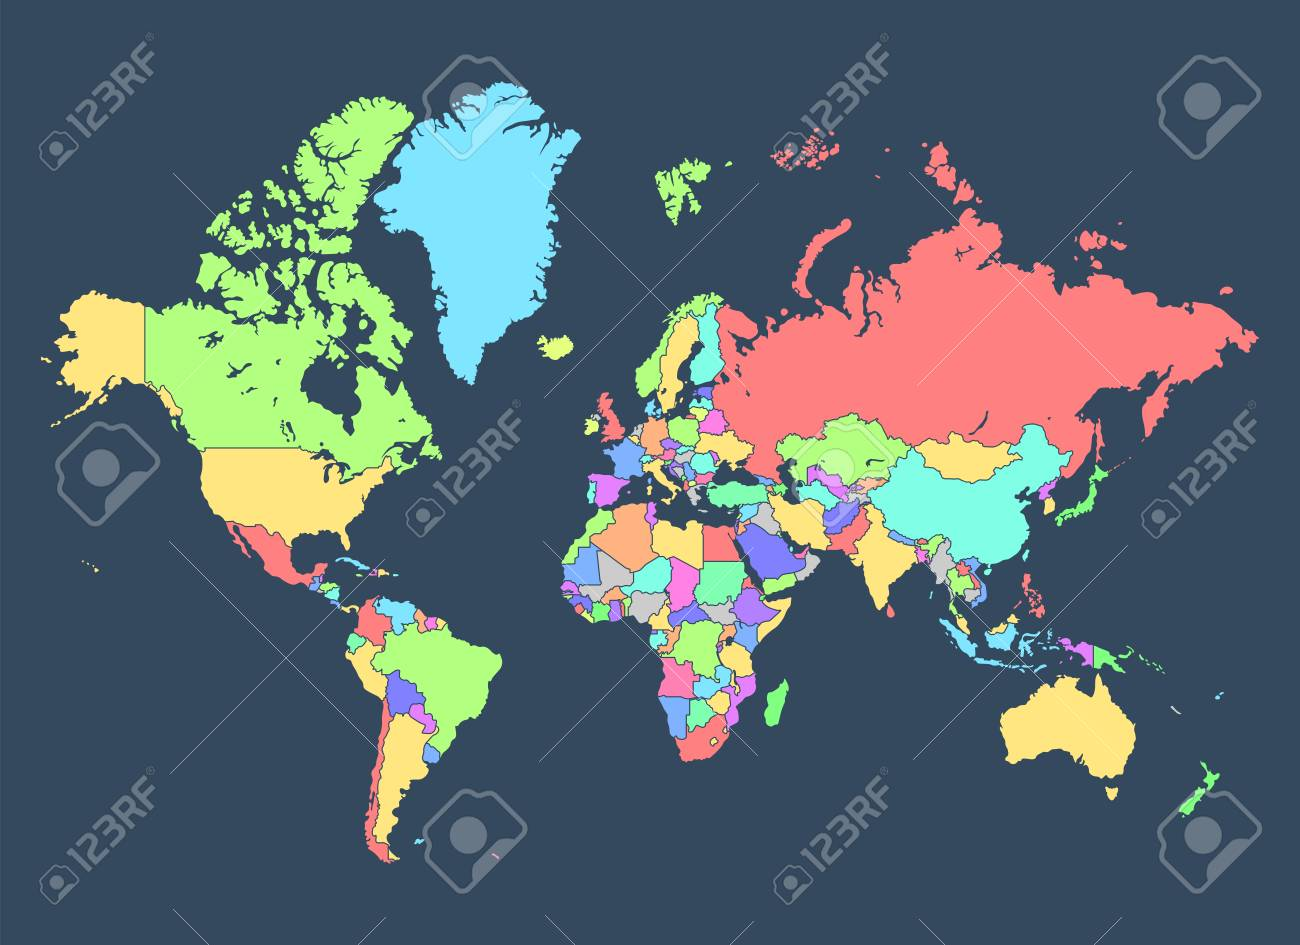 Political Map Of The World With Countries Separated By Colors ...